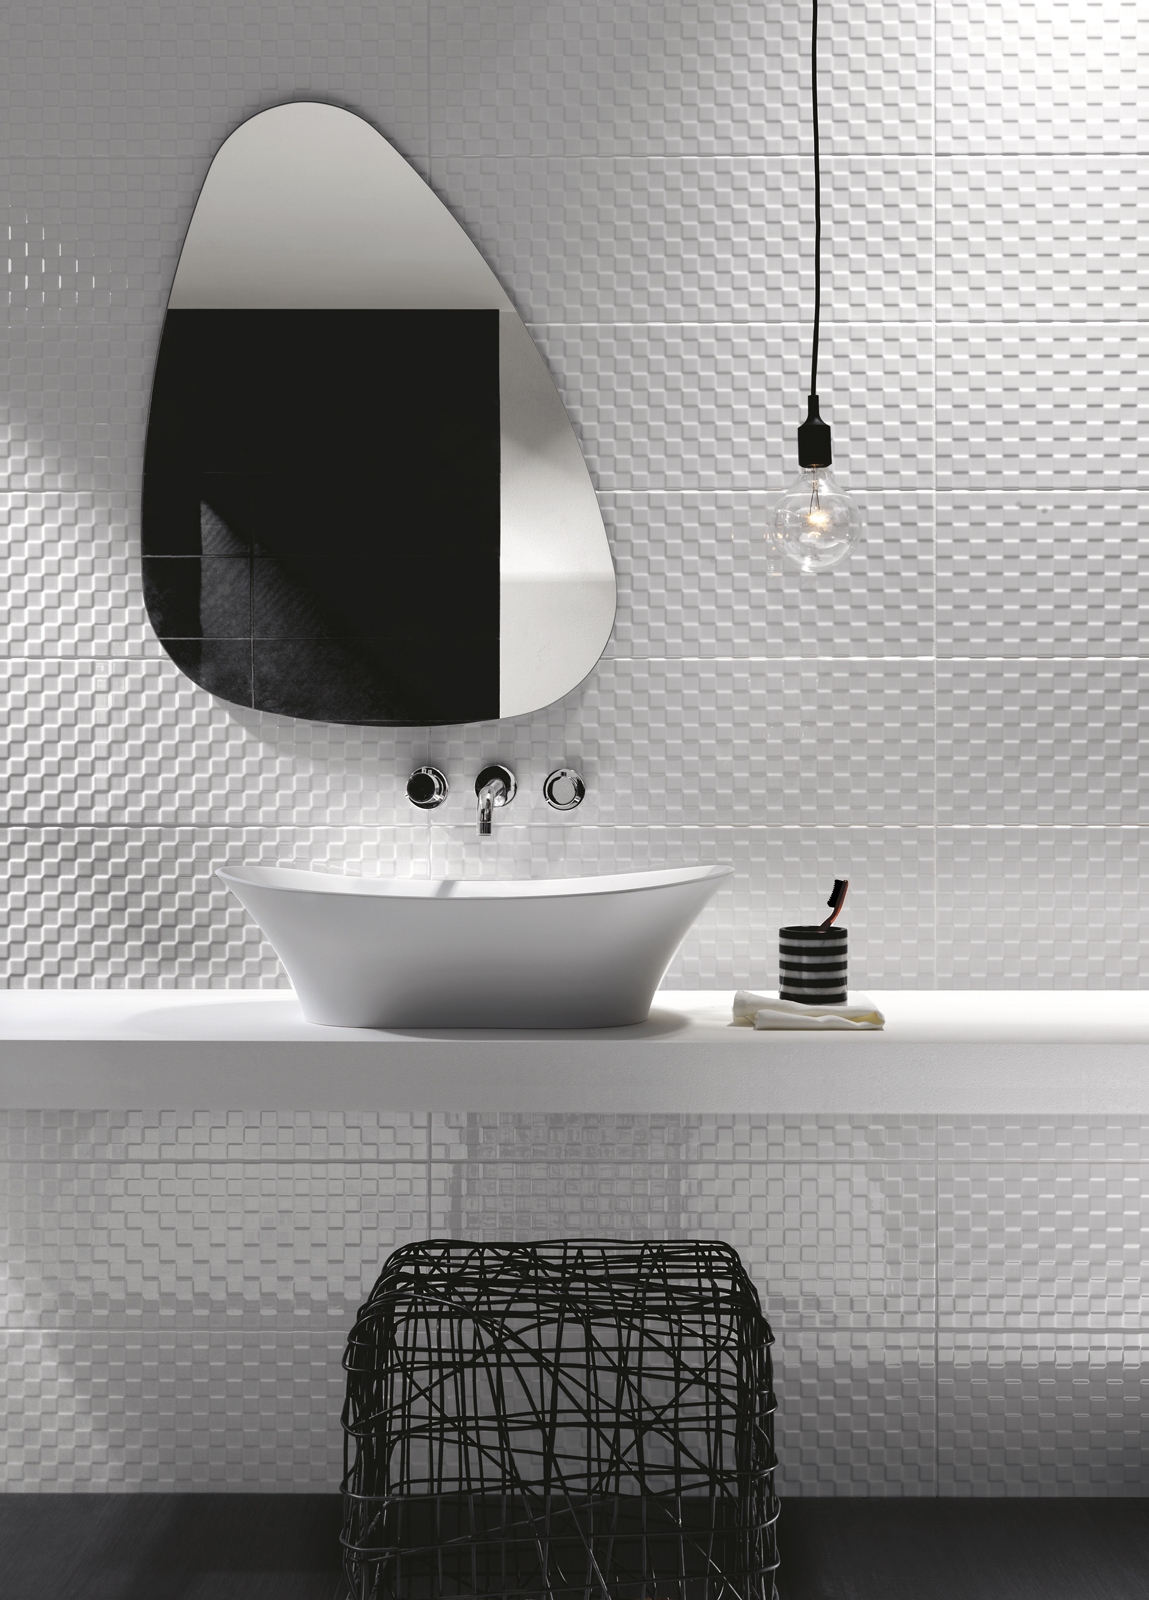 Black and white bathroom wall tiles - Prestige Ceramic Tiles Ragno_4039